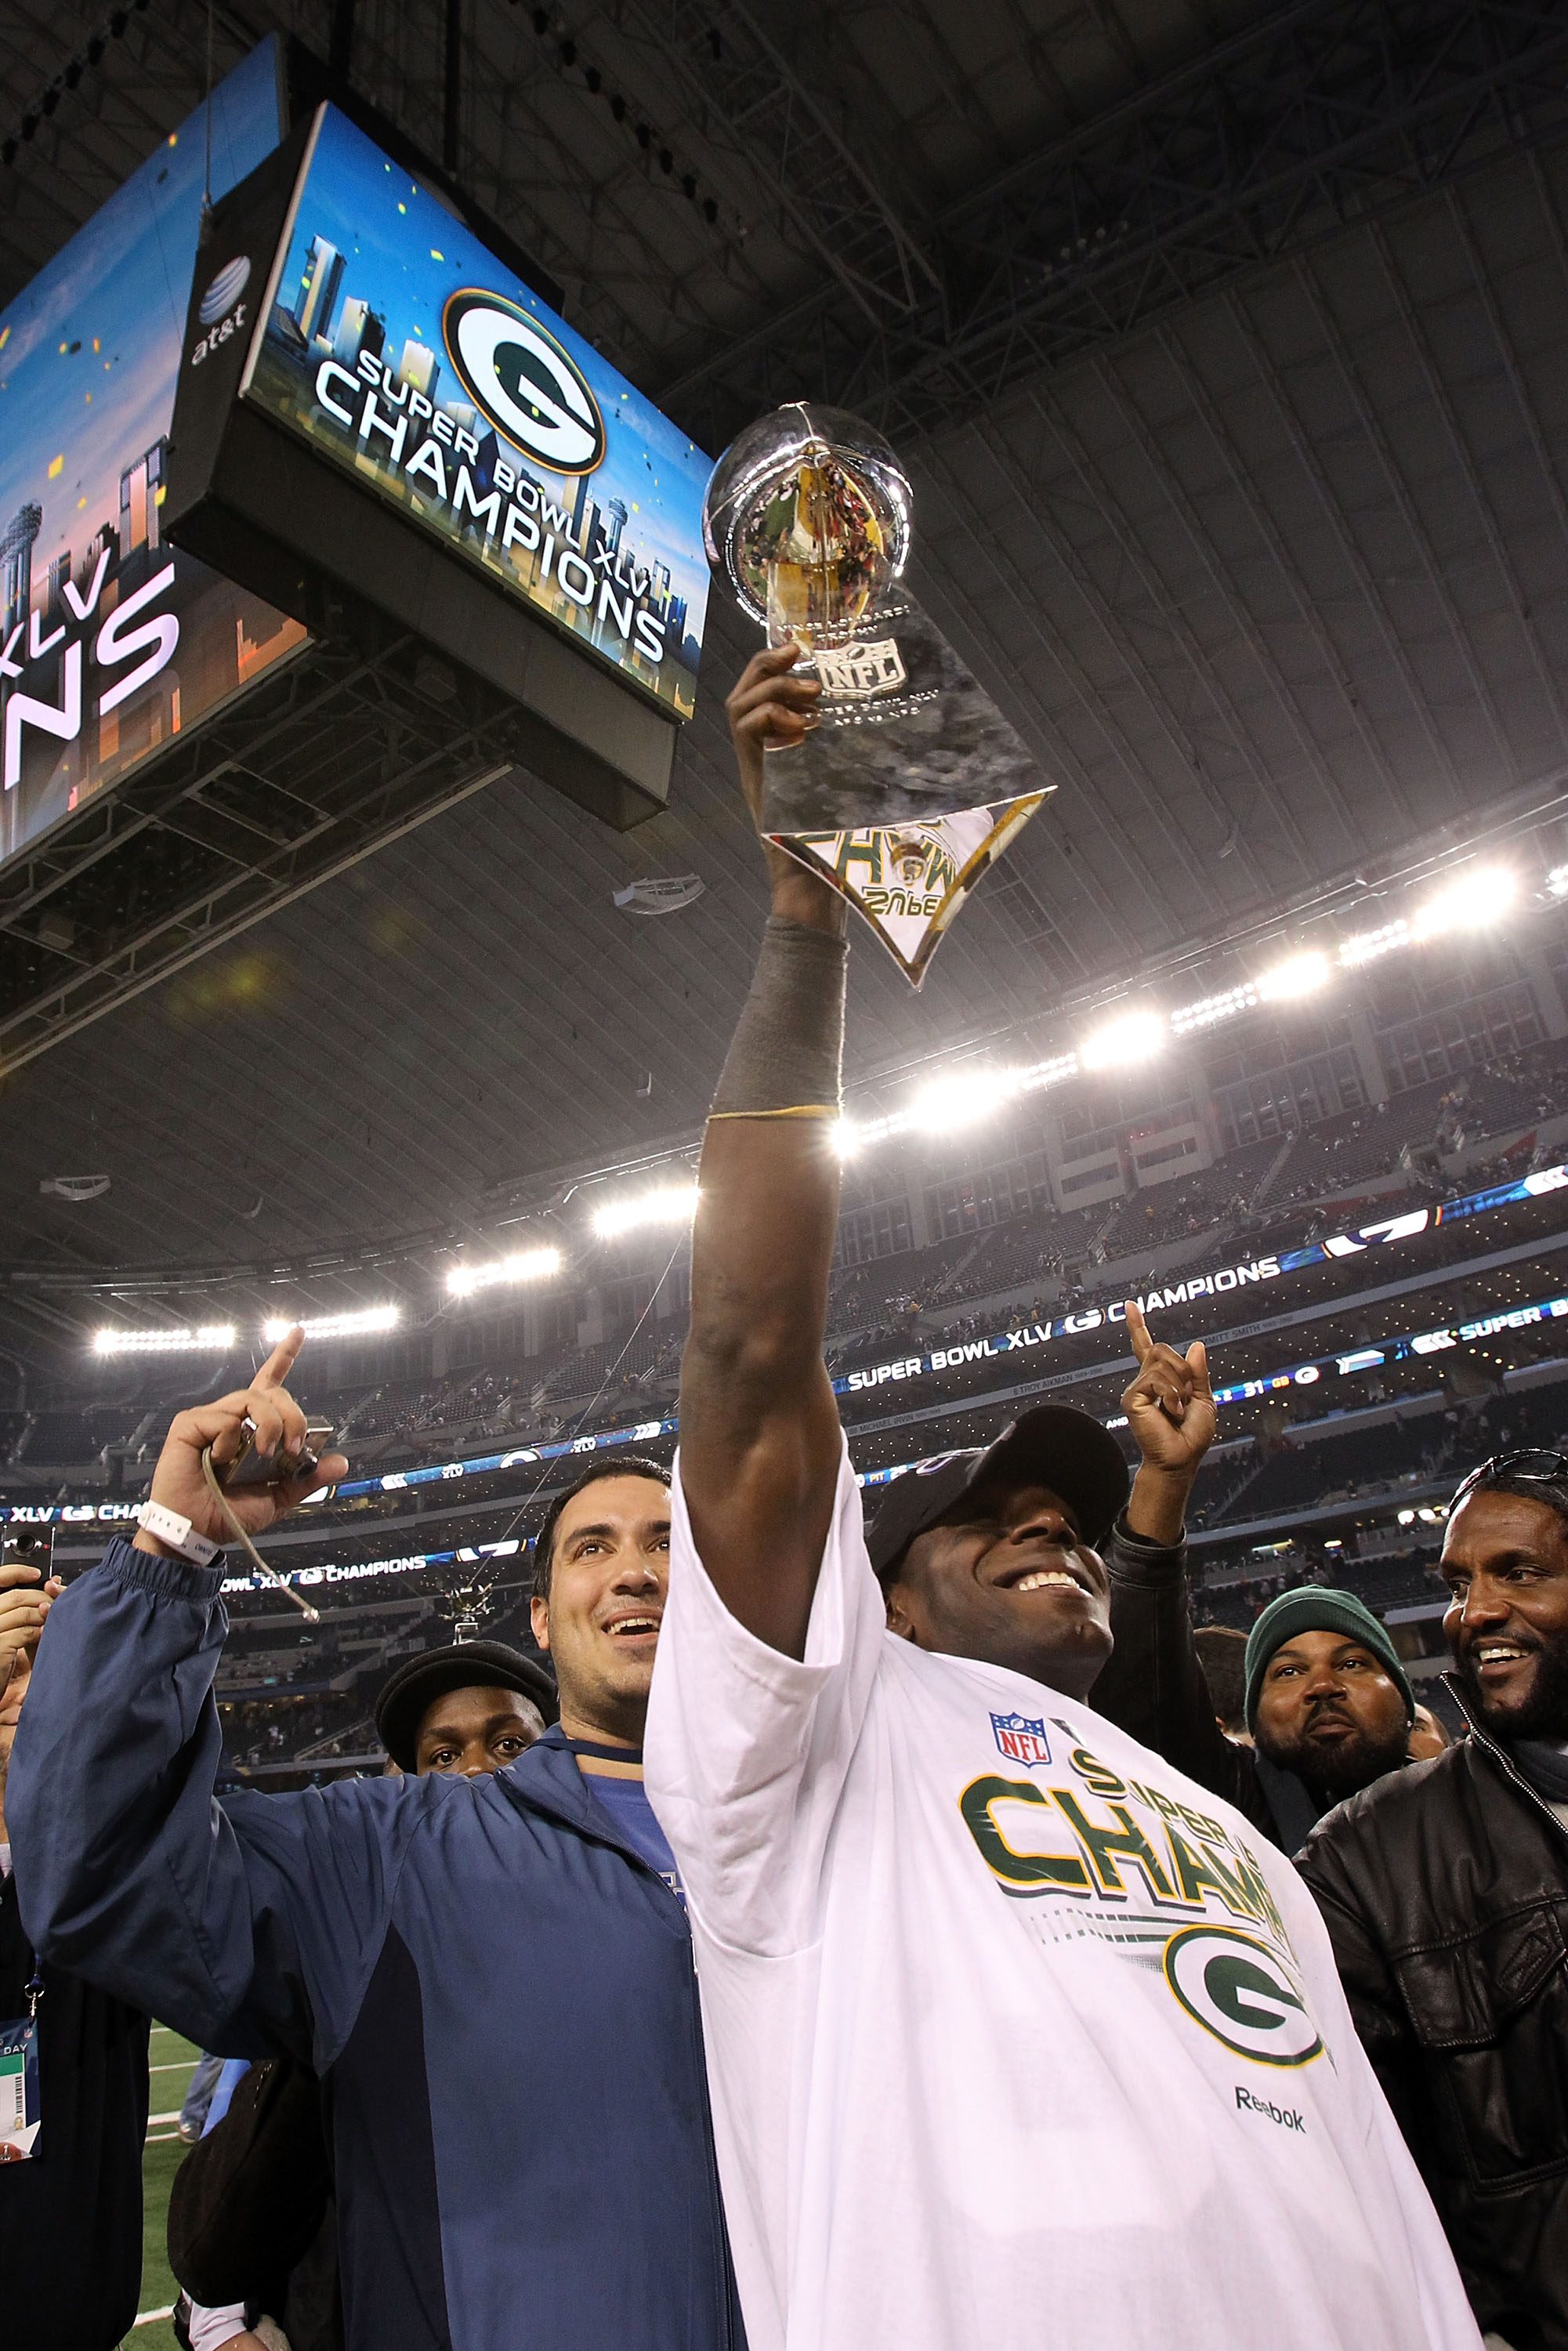 ARLINGTON, TX - FEBRUARY 06:  Donald Driver #80 of the Green Bay Packers celebrates with the Vince Lombardi Trophy after they defeated the Pittsburgh Steelers 31 to 25 in Super Bowl XLV at Cowboys Stadium on February 6, 2011 in Arlington, Texas.  (Photo b